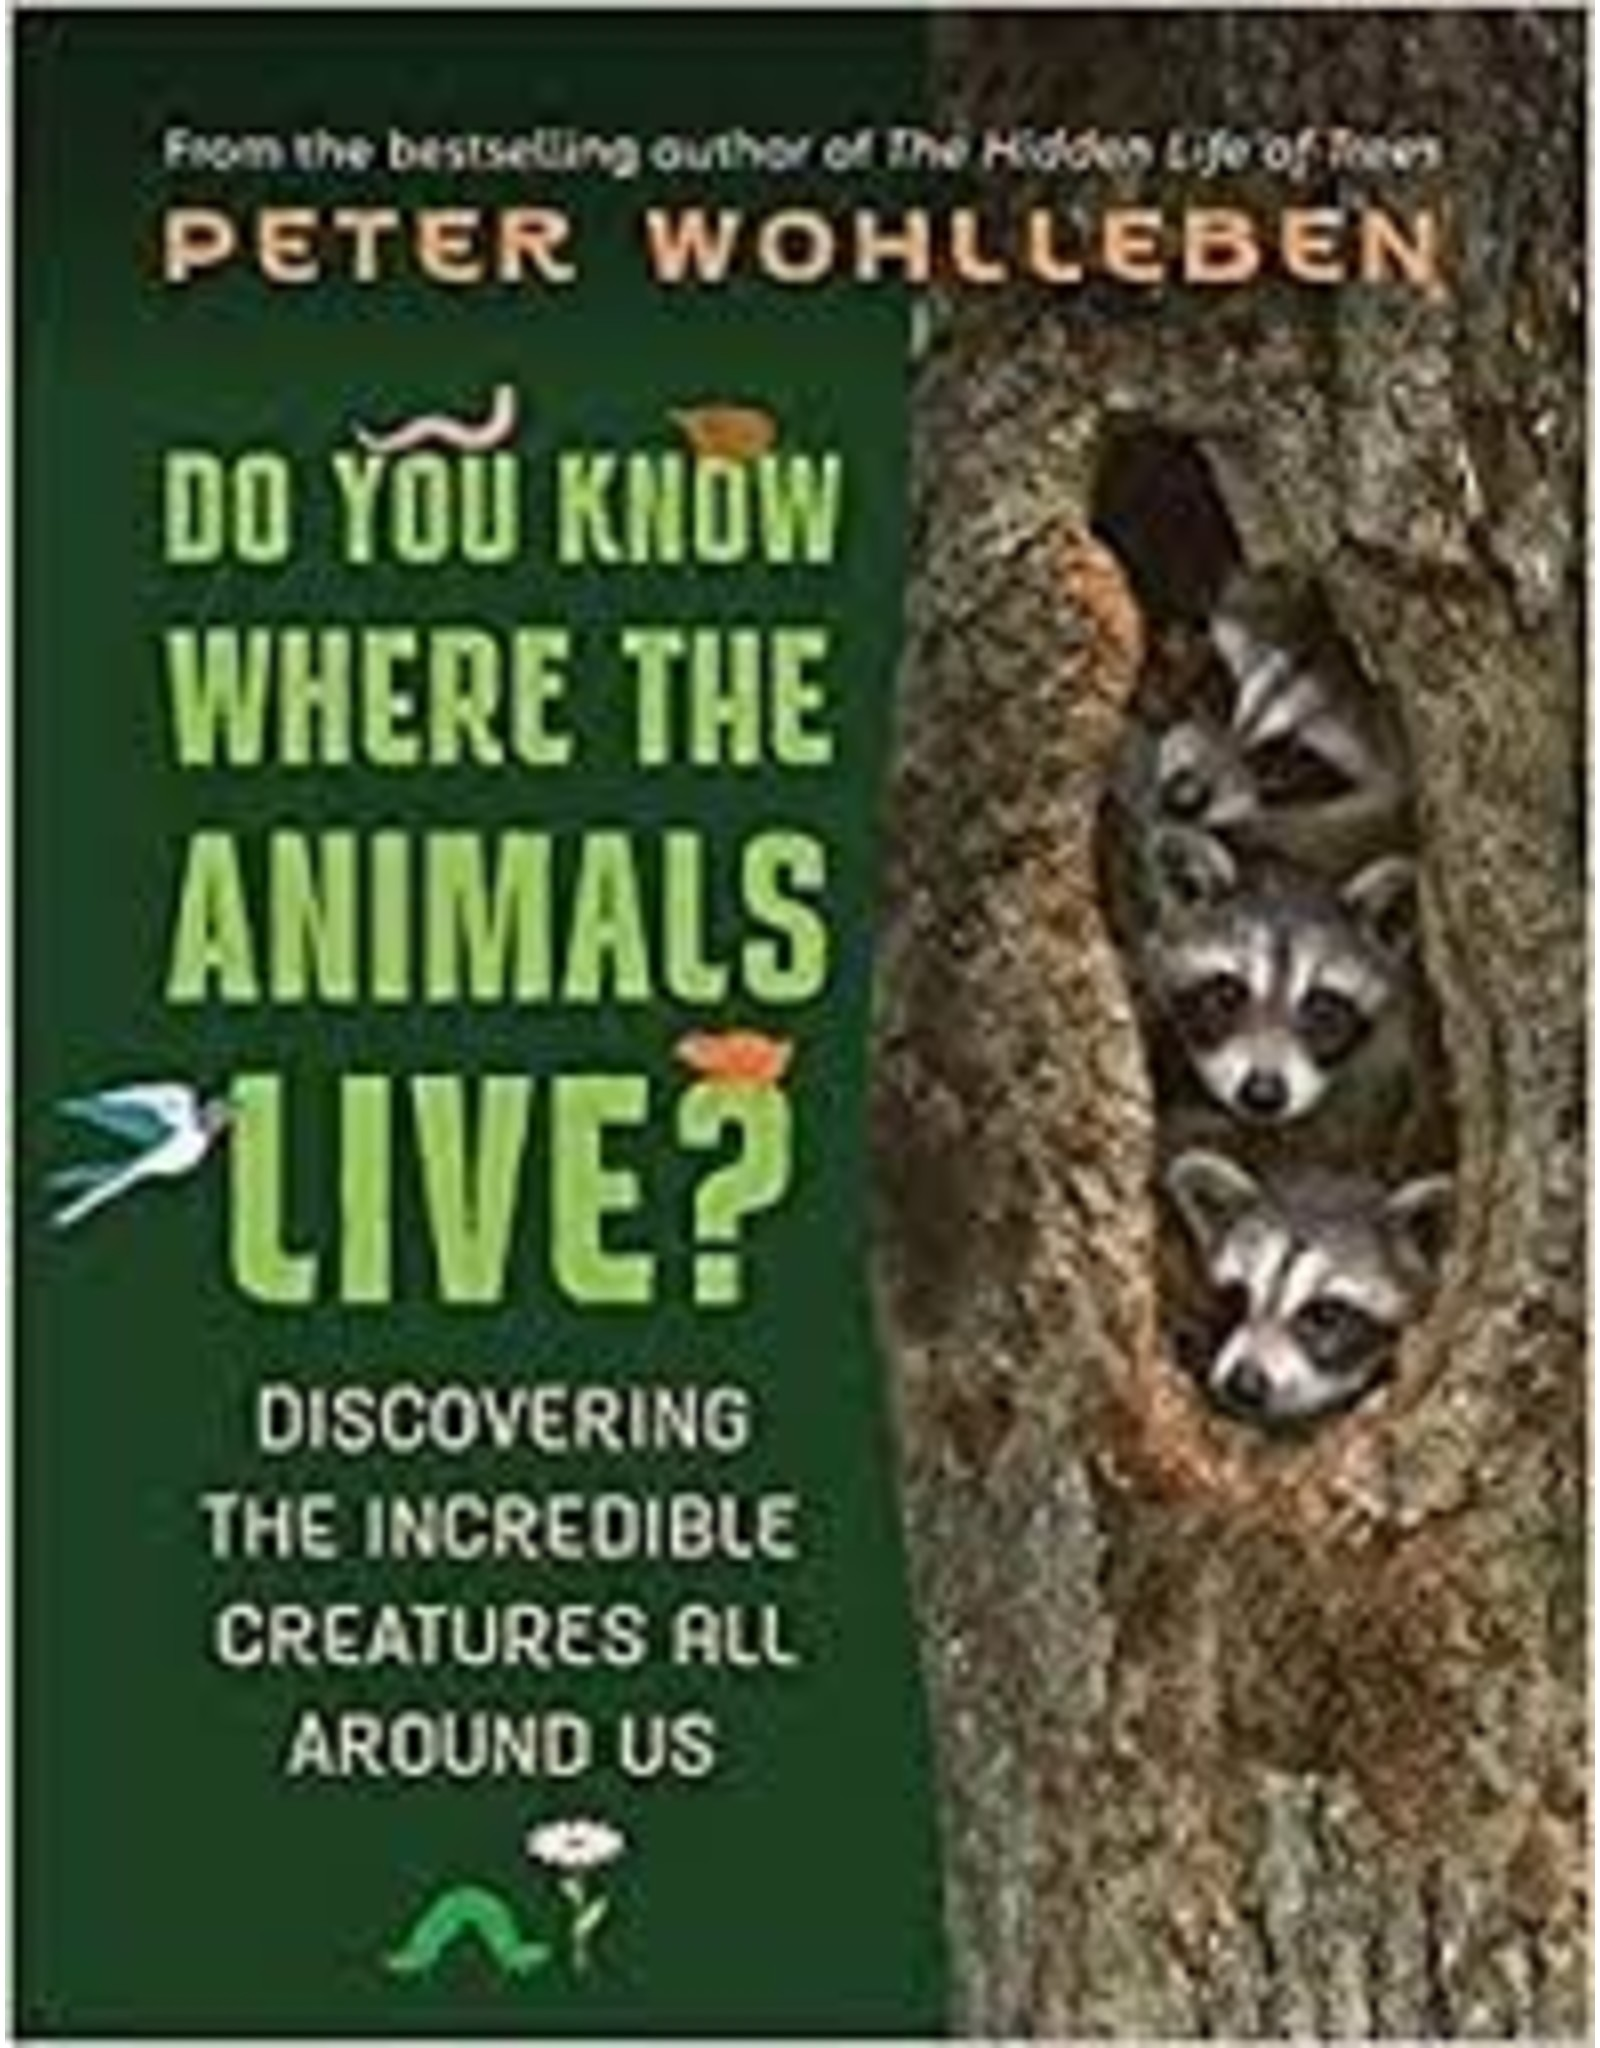 Books Do You Know Where The Animals Live? Discovering the Incredible Creatures all Around Us by Peter Wohlleben